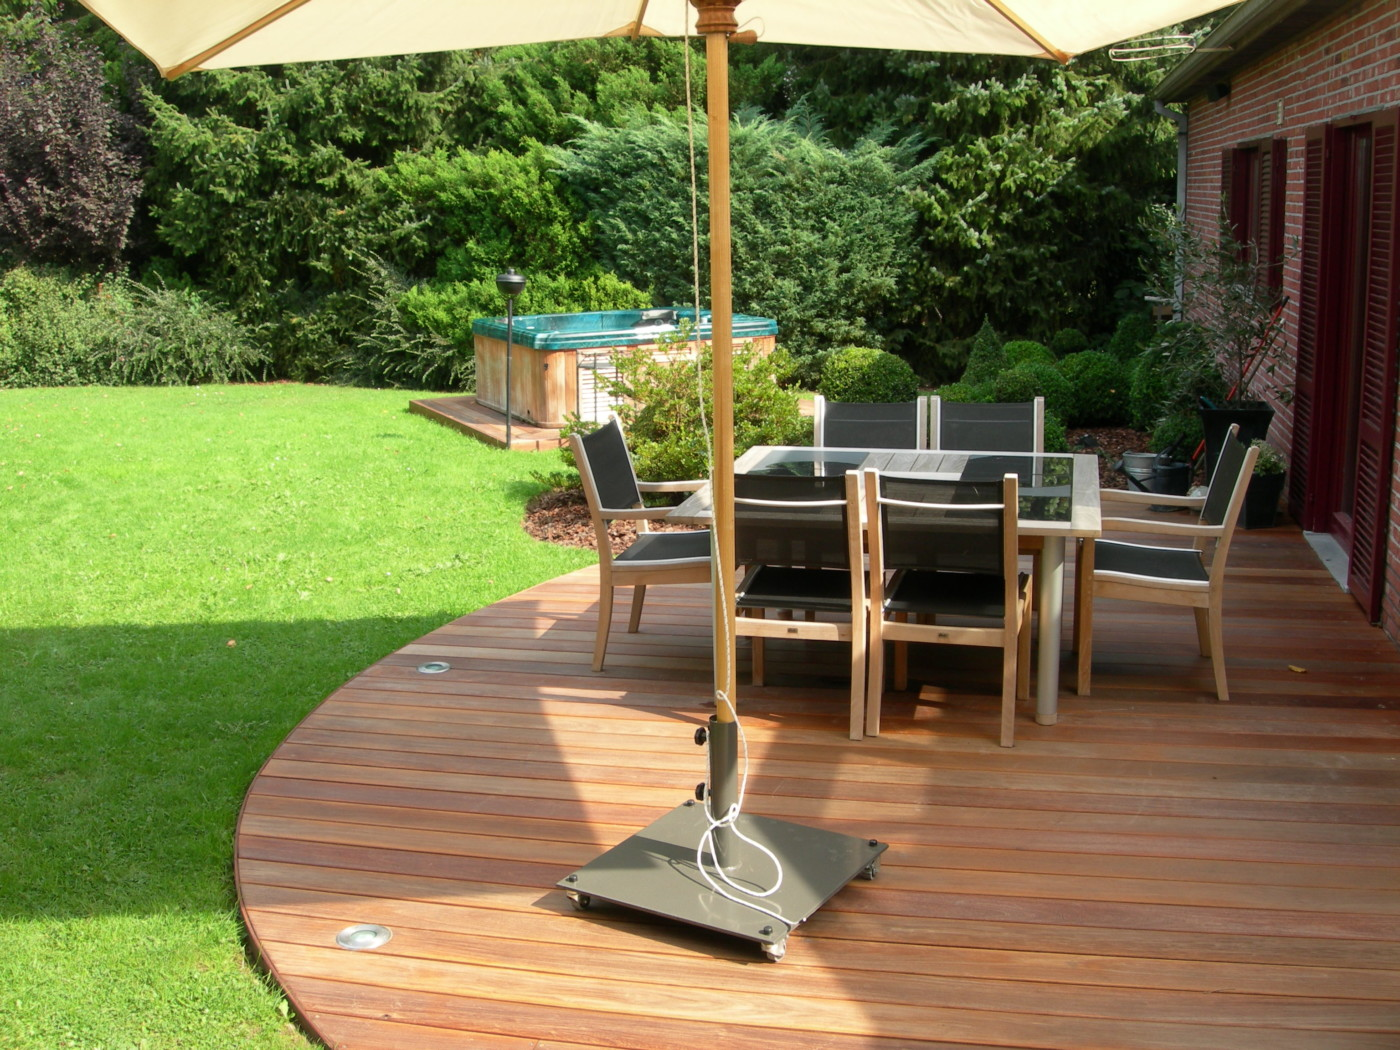 Terrasse Bois Arrondie Terrasses Arrondies En Bois - Mt-design